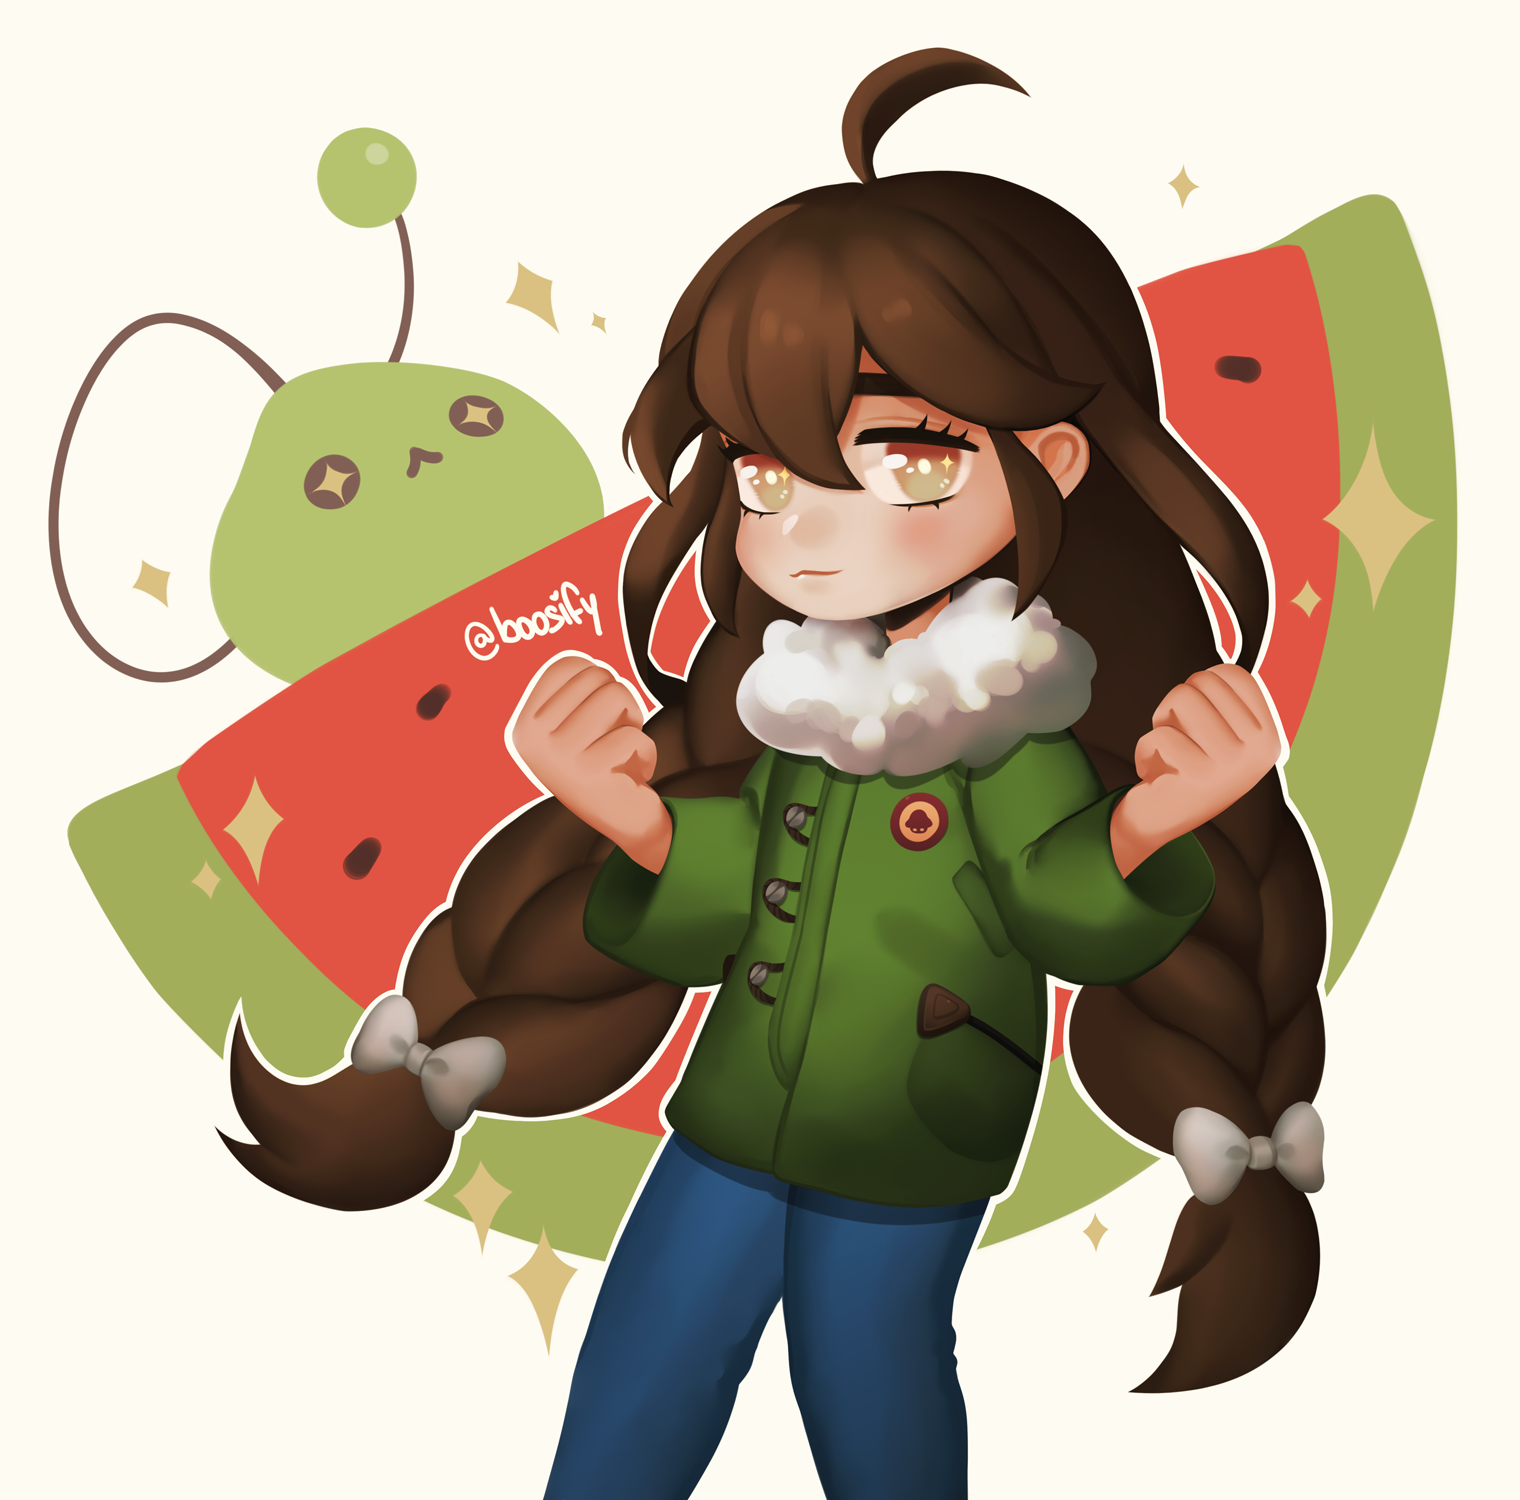 maple_2_fan_art_entry_by_boosify-dcilzw4.png